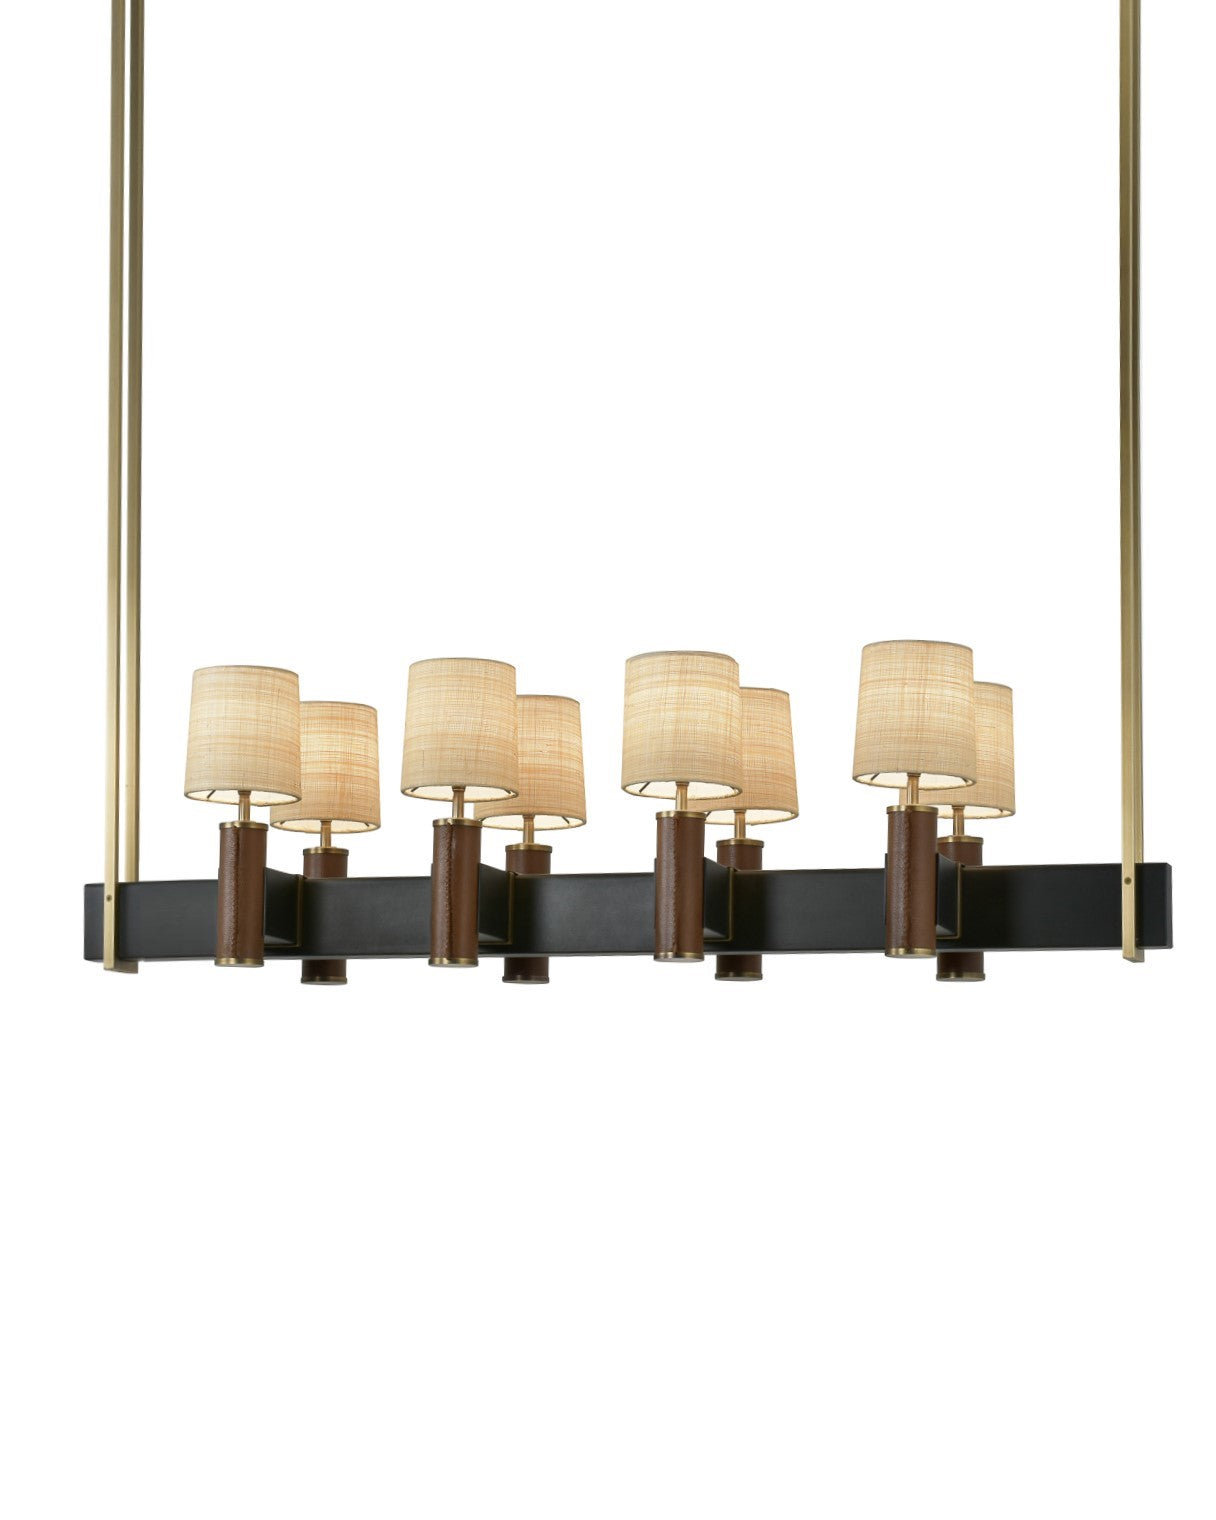 Del Mar Chandelier in Light Antique Brass and Brown Leather with Raffia Shades on Patinated Steel Frame